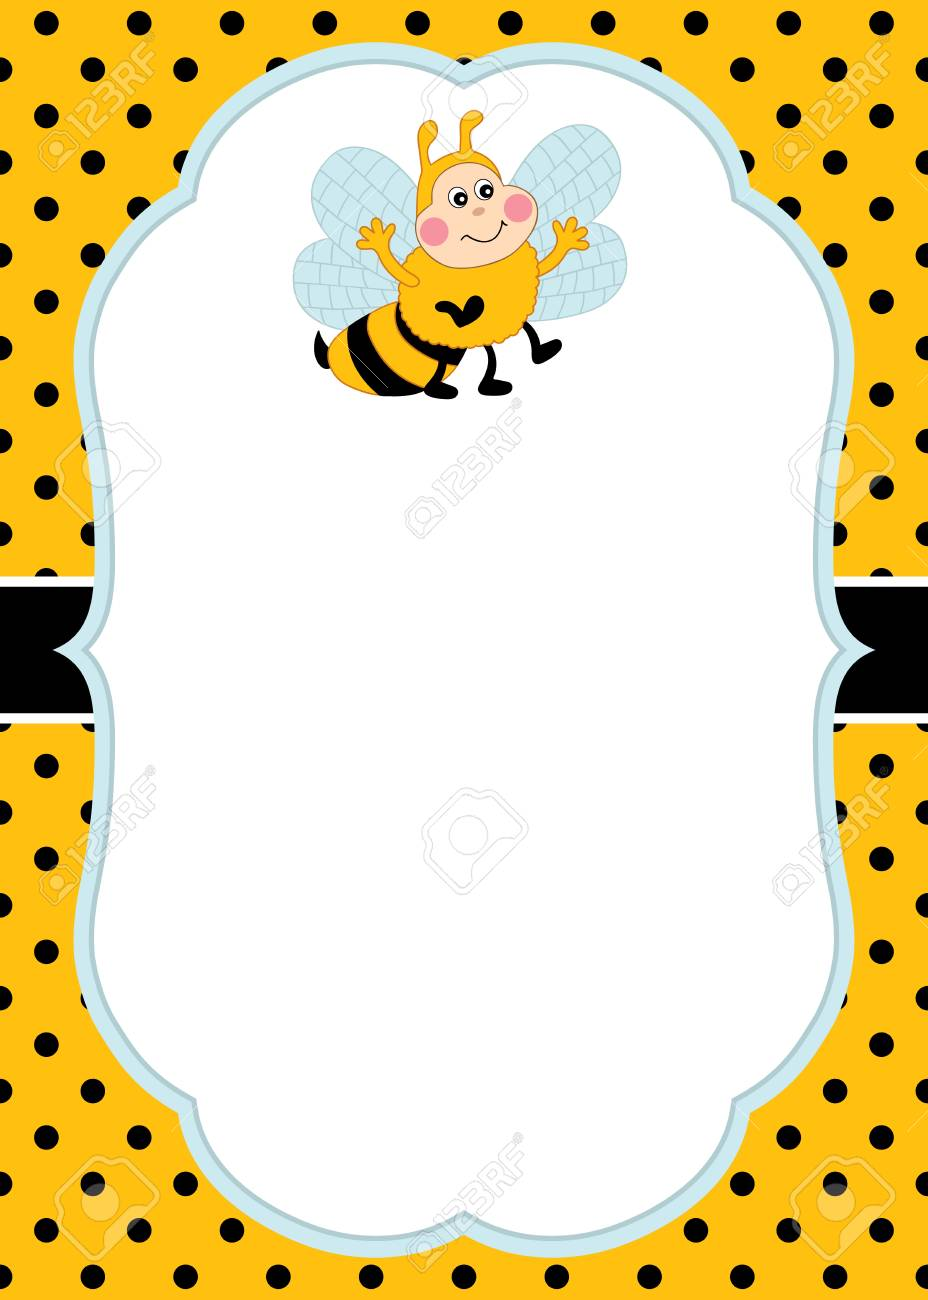 vector card template with a cute bee on polka dot background